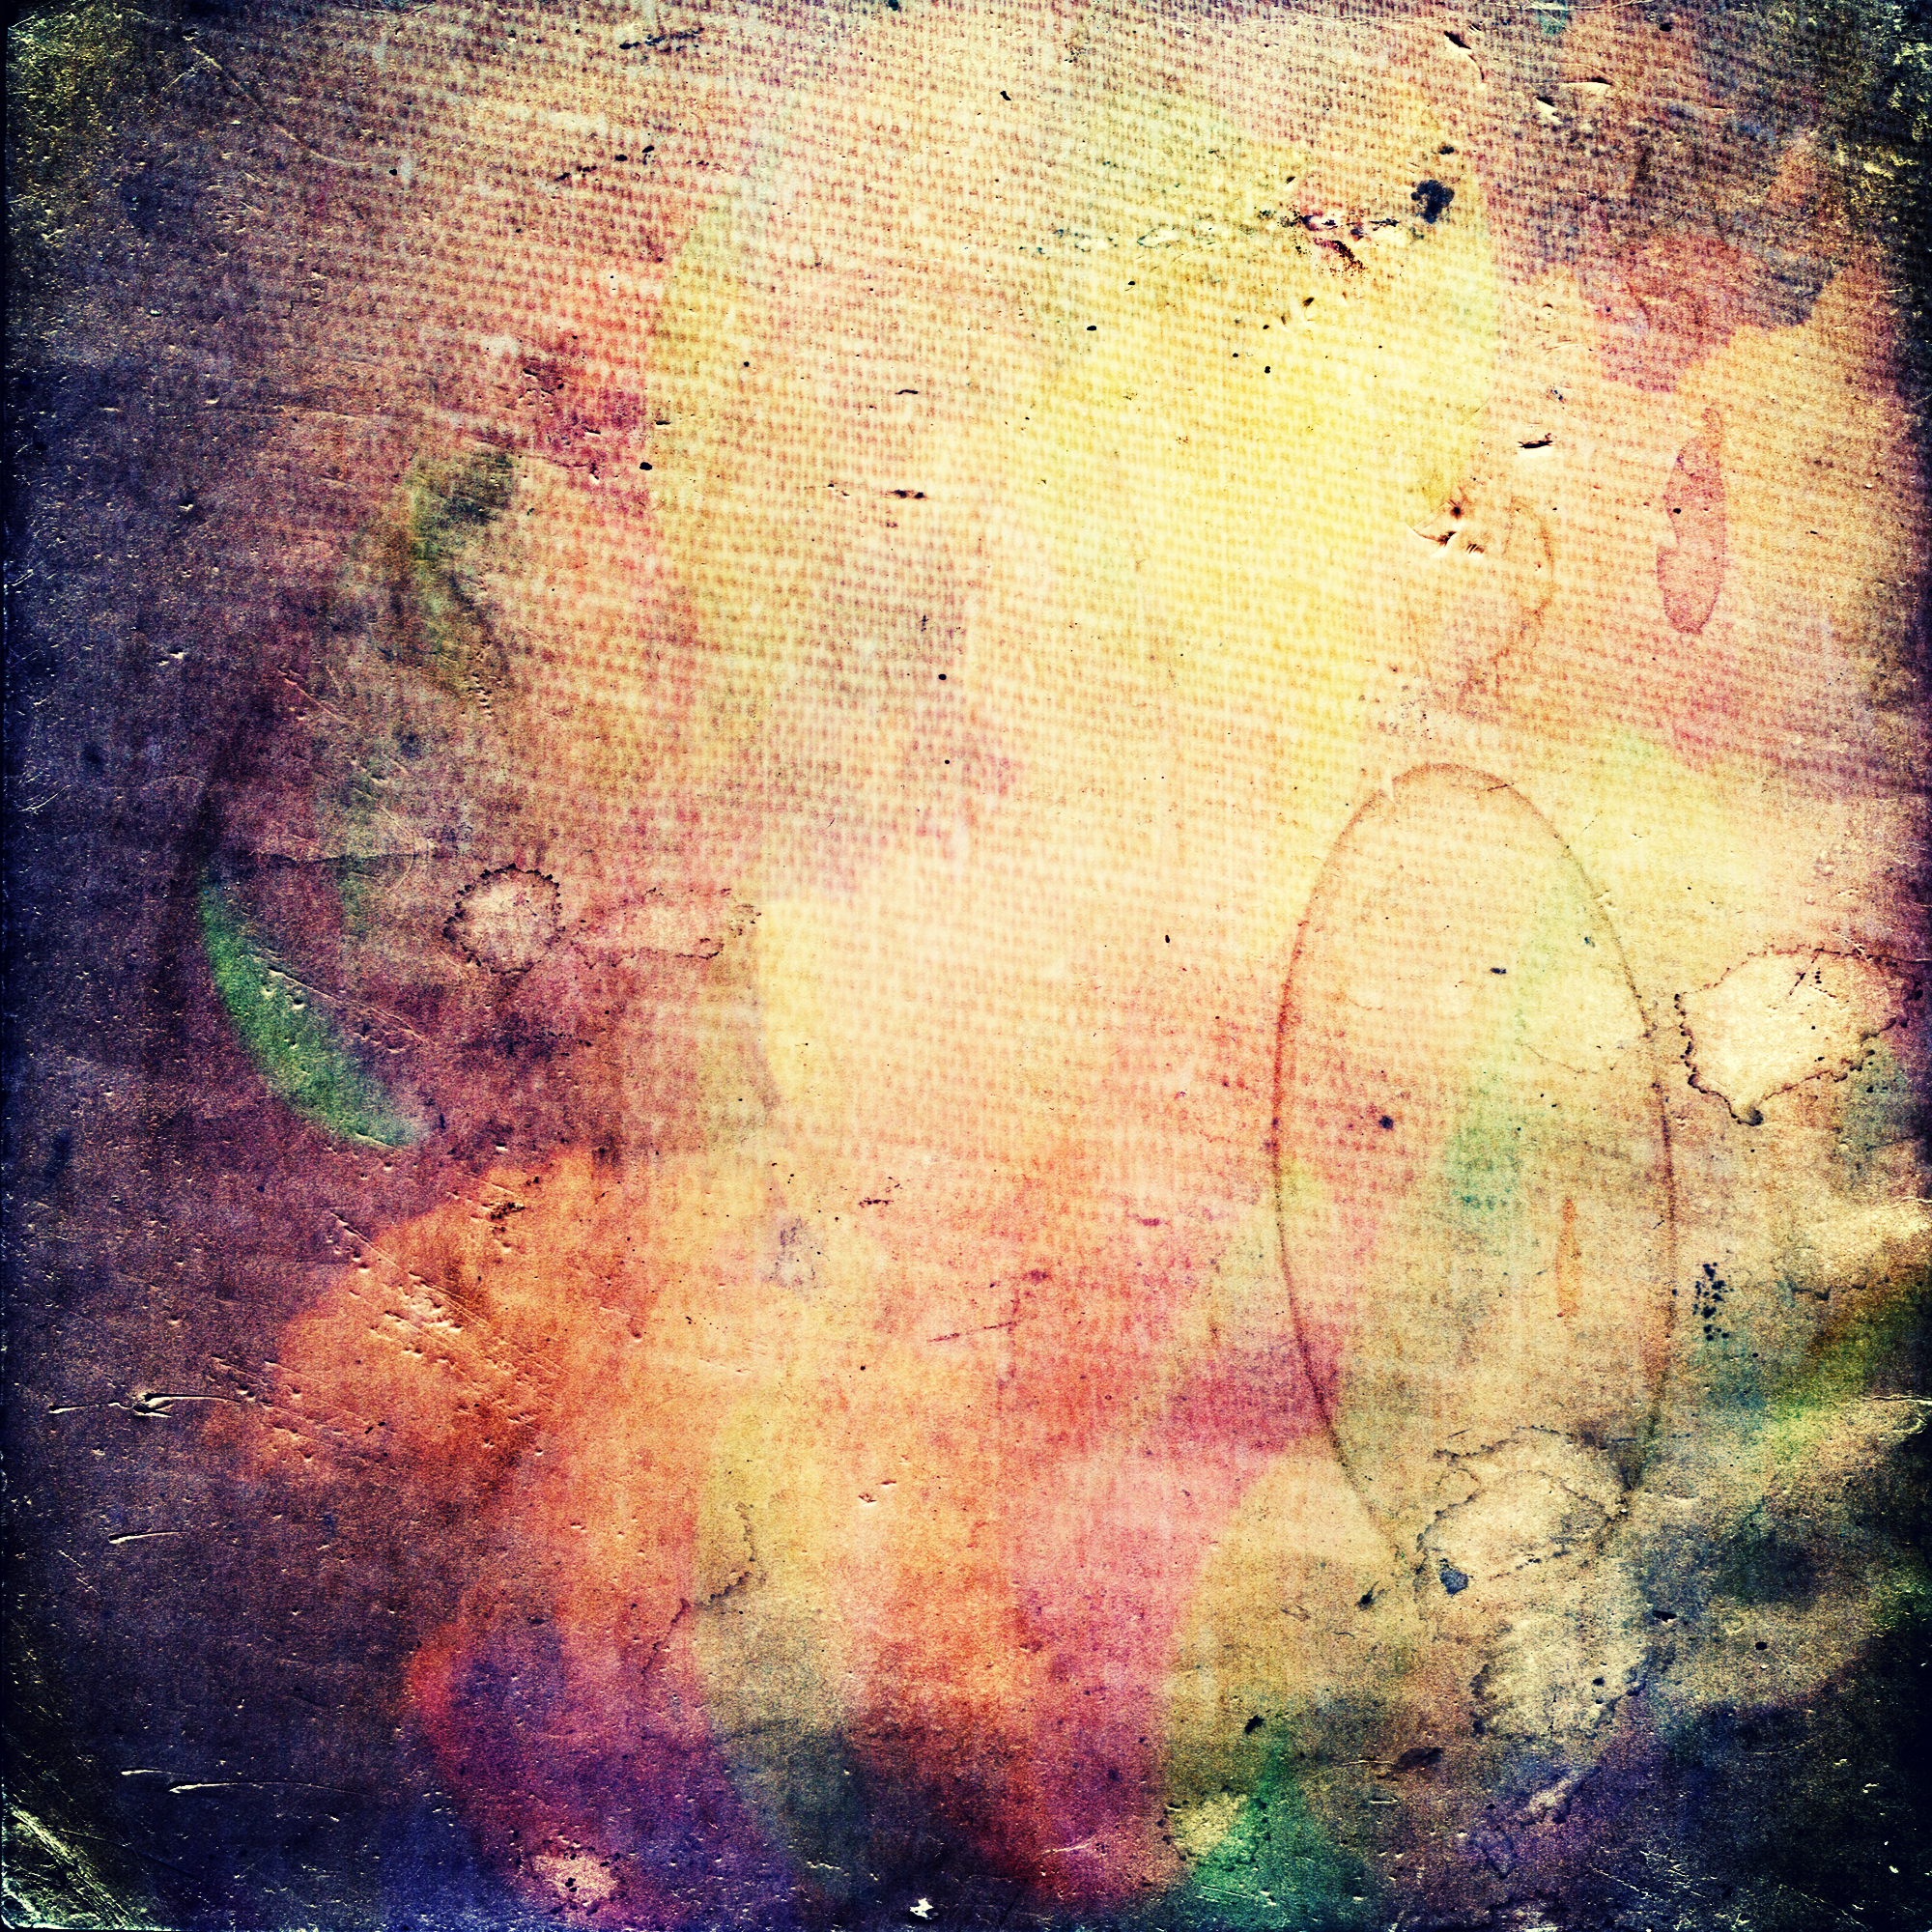 Abstract Bokeh Grunge Textures